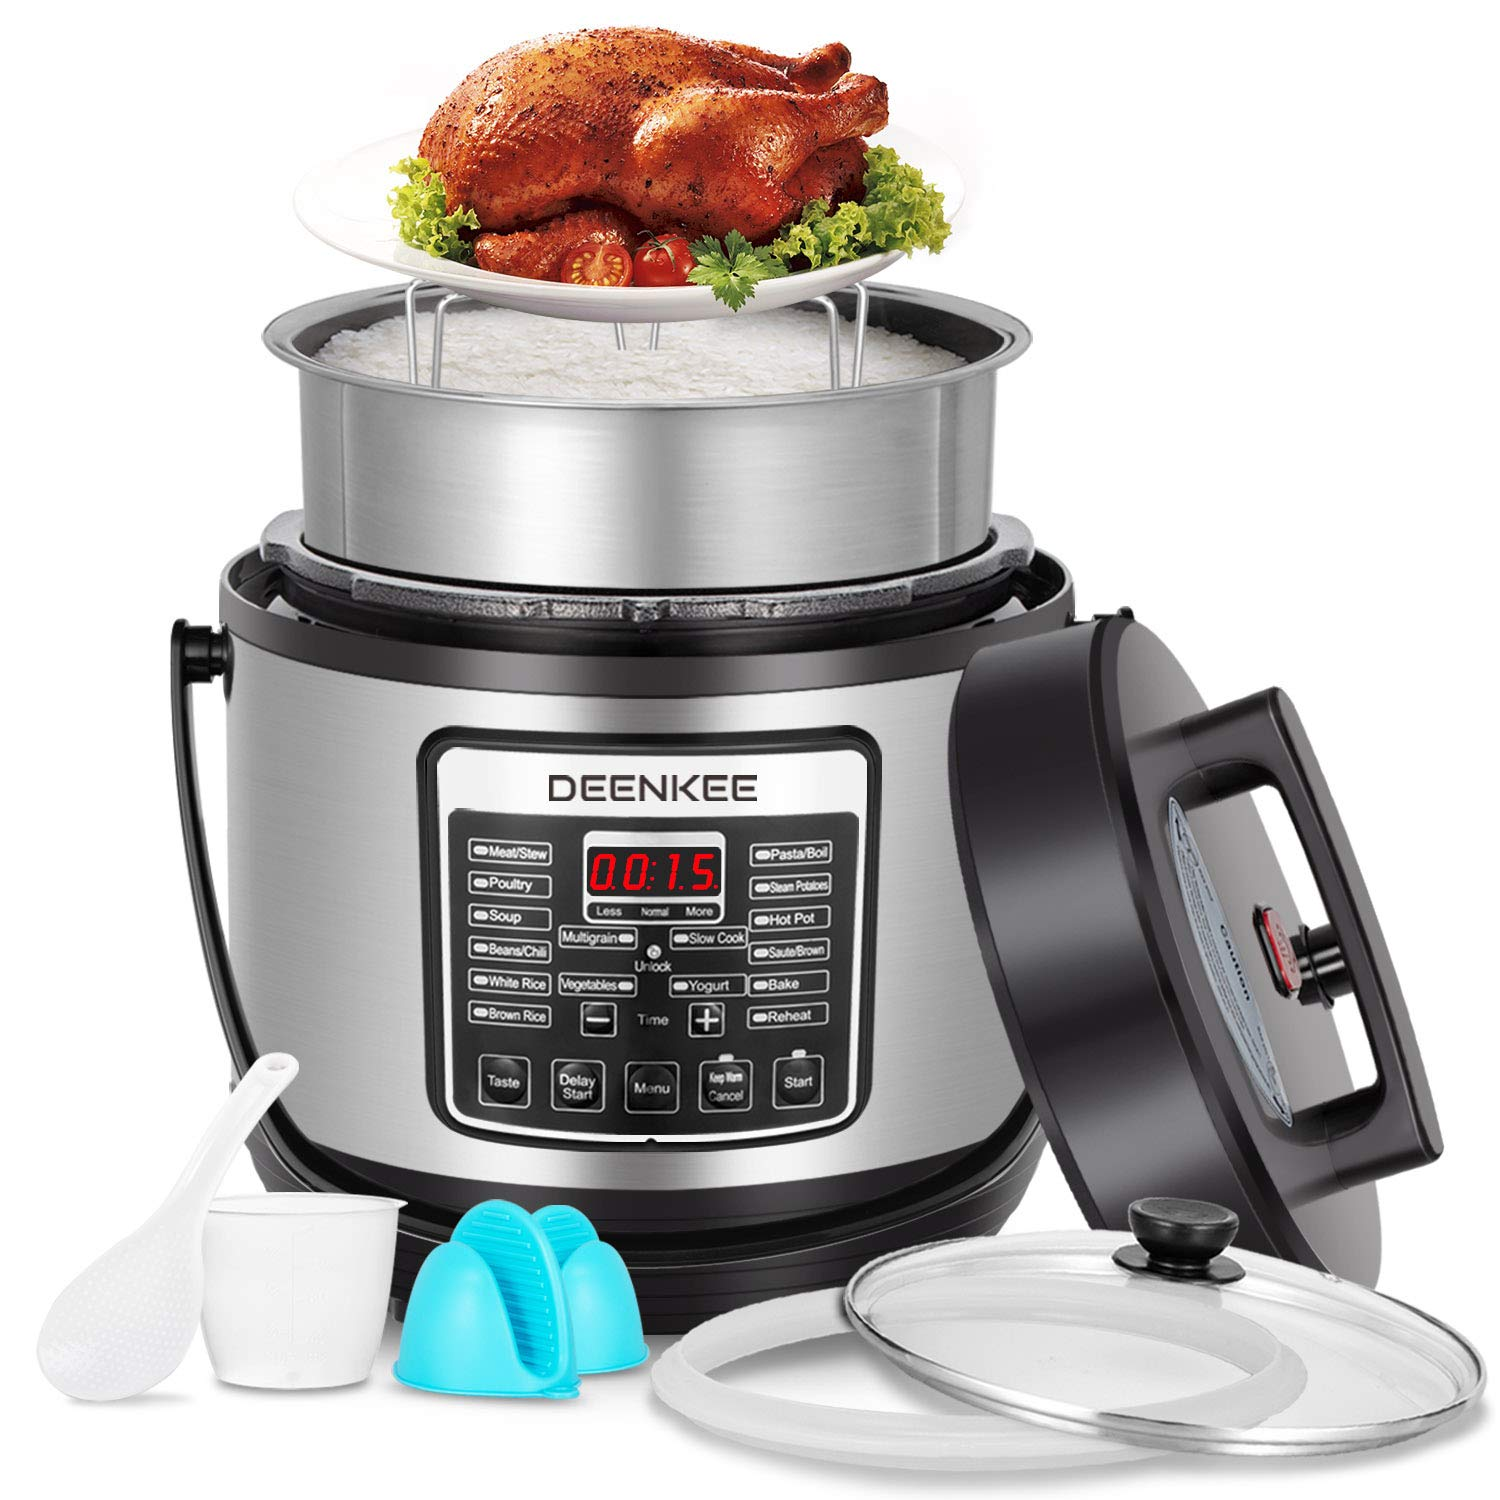 DEENKEE 10-in-1 Multi-Function Pressure Cooker 6 Quart, Instant Programmable for Rice Cooker, Steamer, Egg Cooker, Slow Cooker, Yogurt Maker, Hot Pot, Mom Christmas Gifts in 2-Year Warranty by Deenkee